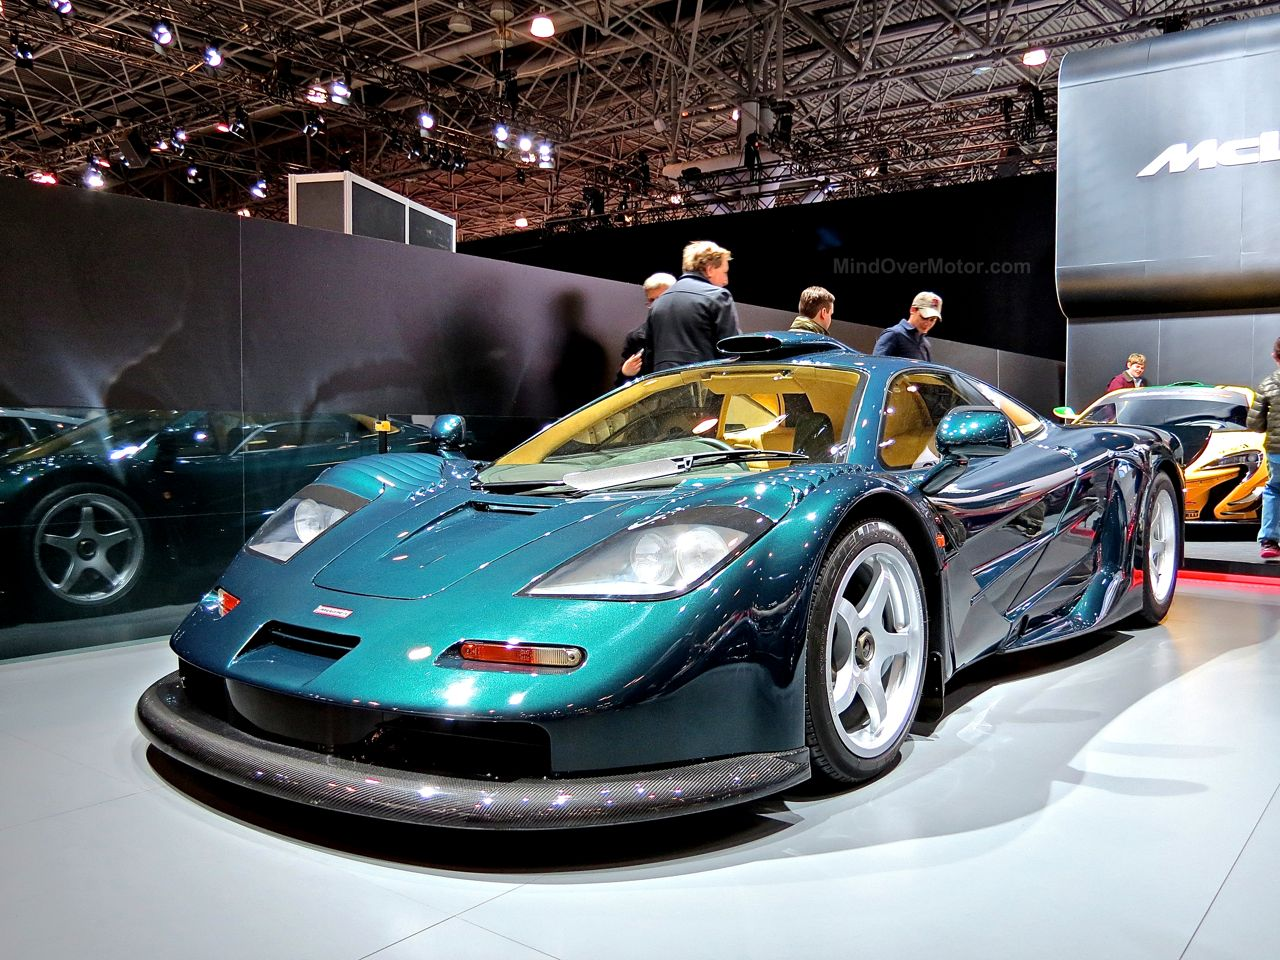 McLaren F1 GT Longtail (XP GT) at NYIAS 2015 | Mind Over Motor